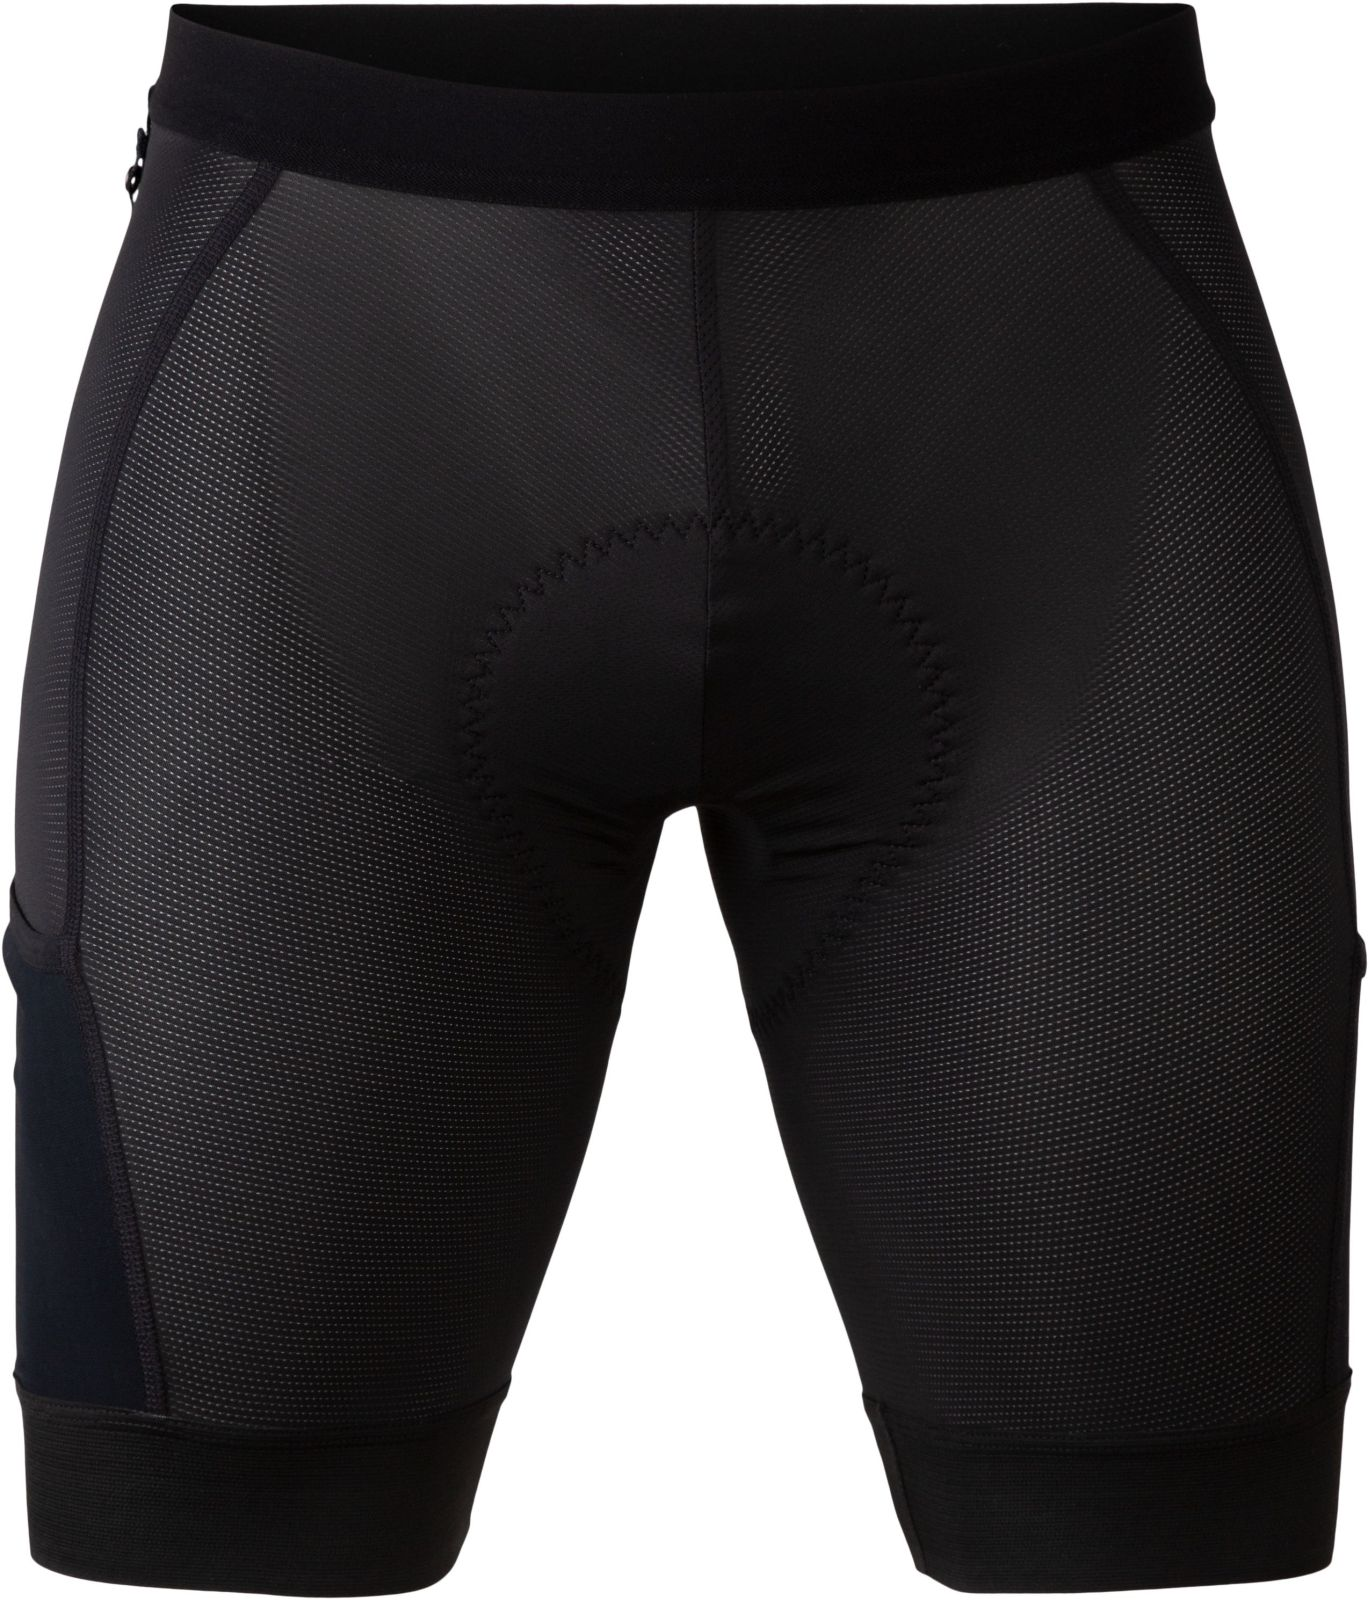 Specialized Ultralight Liner Short W/Swat Men - black S